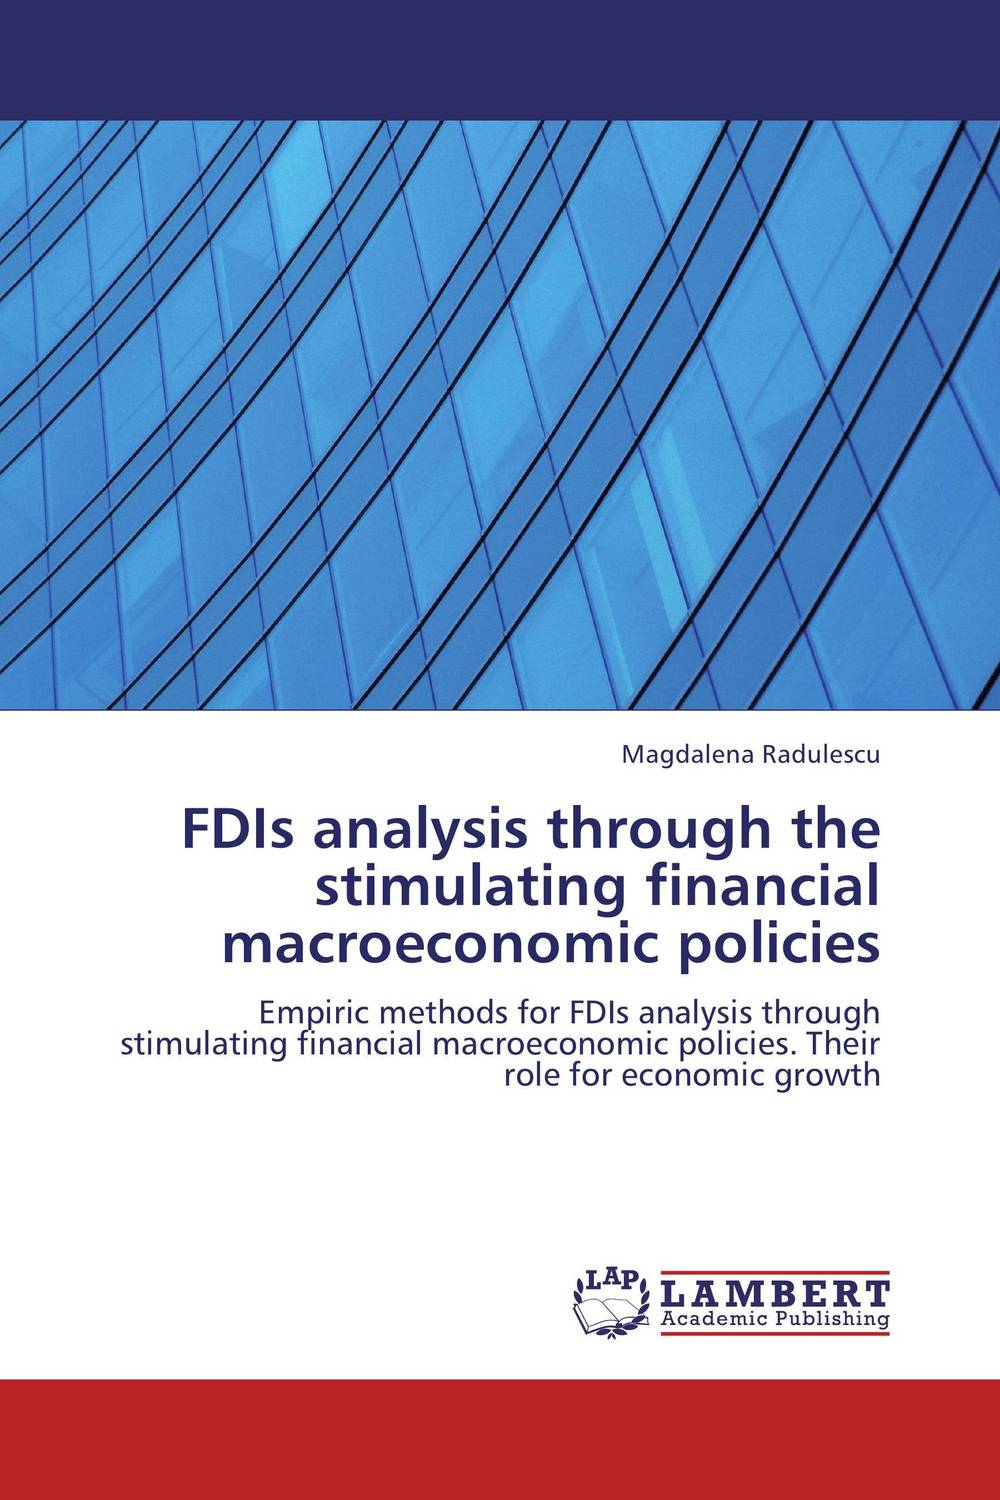 Фото FDIs analysis through the stimulating financial macroeconomic policies cervical cancer in amhara region in ethiopia